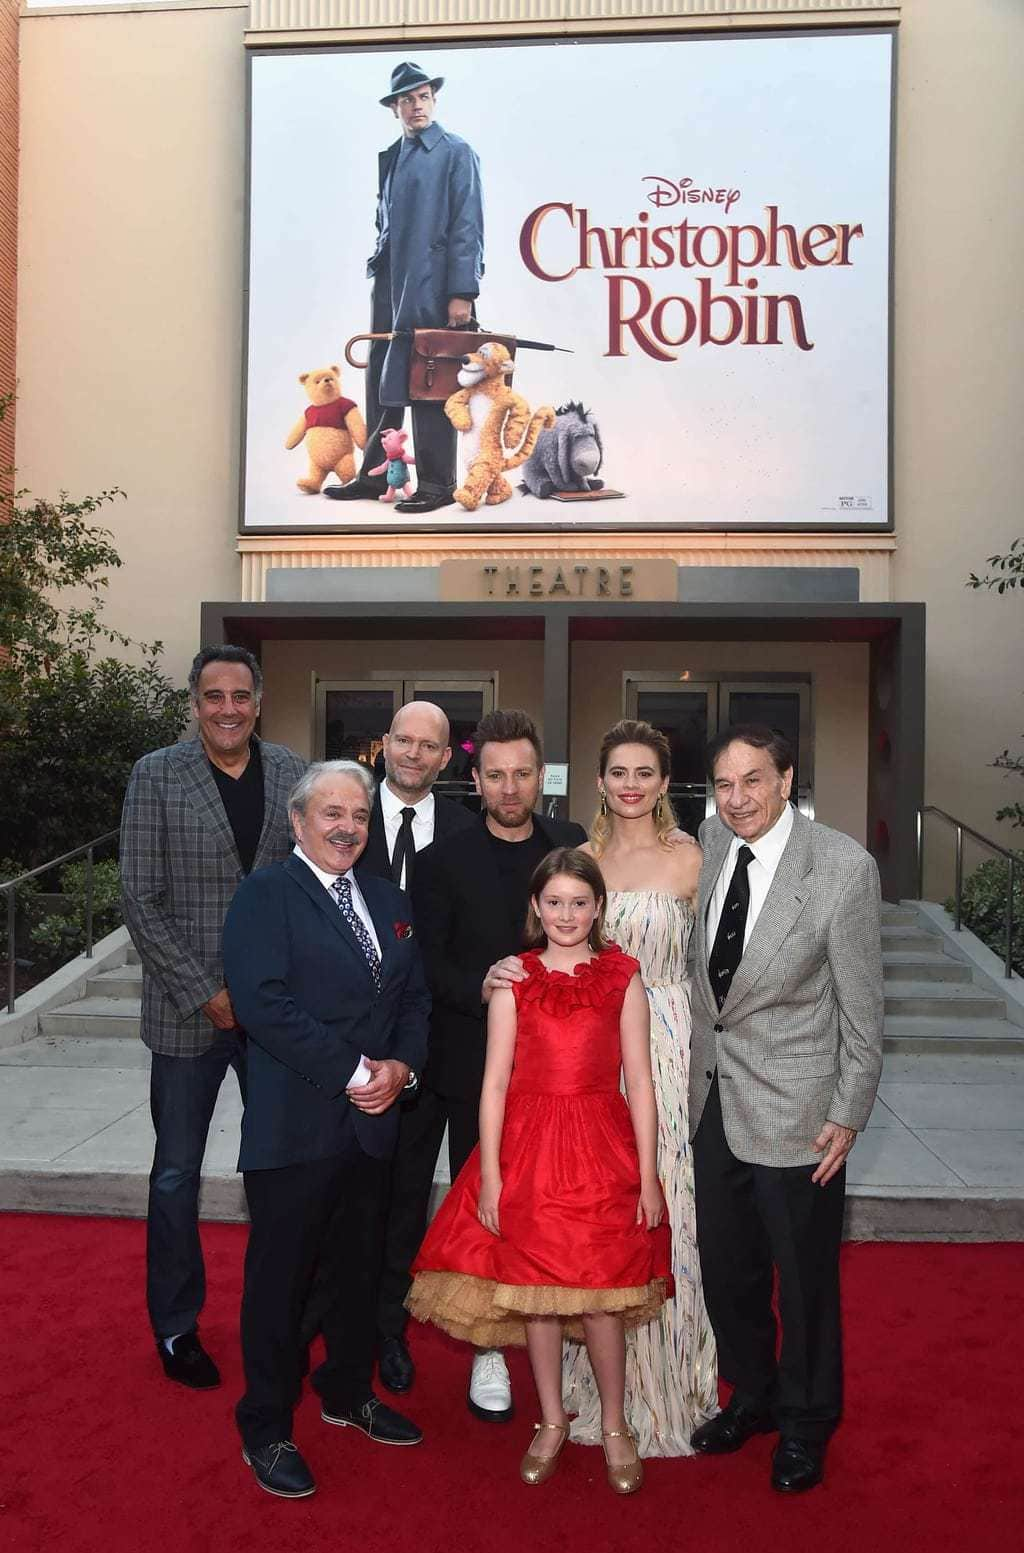 Disney's Red Carpet for Christopher Robin